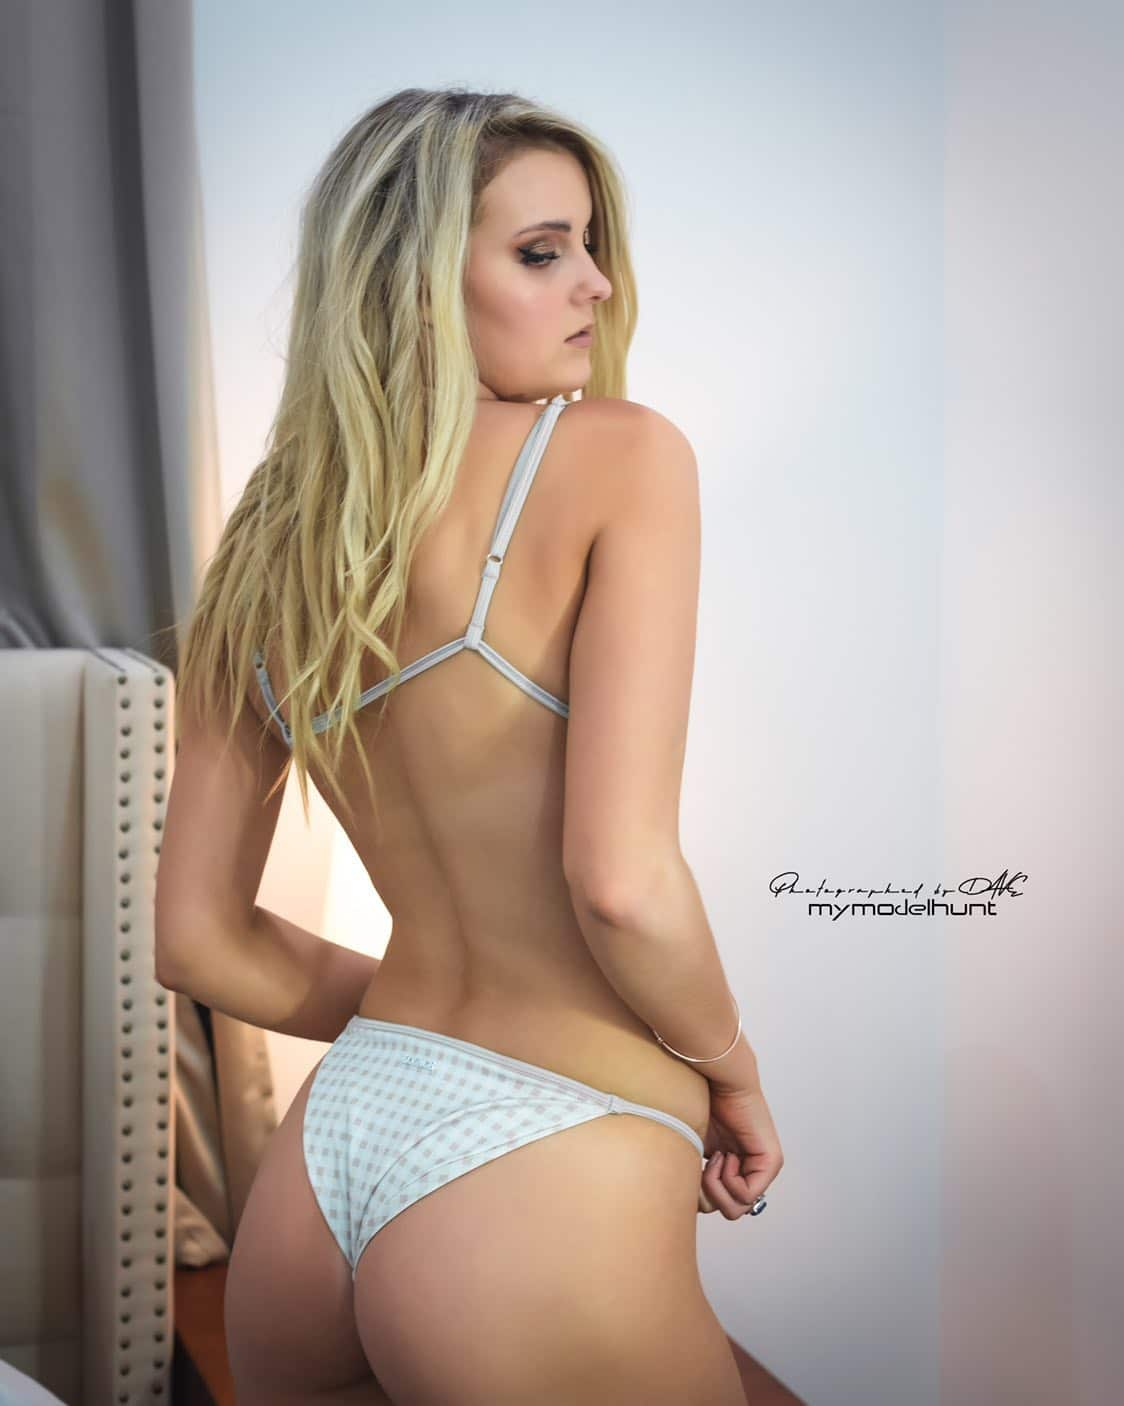 Beautiful Australian blonde model Maggie McGuire @iammaggiemcguire wearing a white bikini showing her bare back and ass cheeks